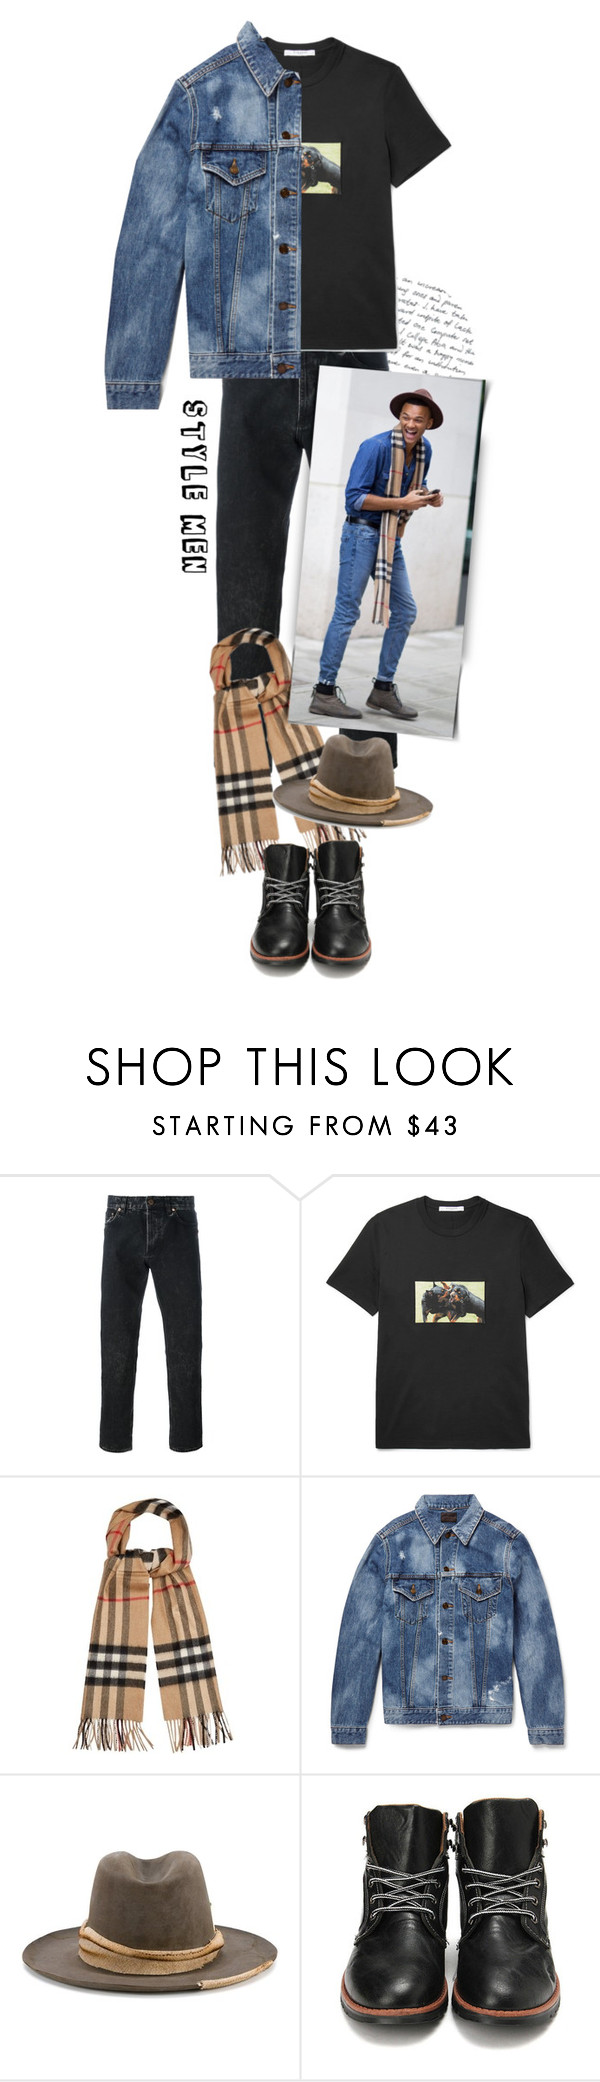 """""""Style Men"""" by lucksmetoo ❤ liked on Polyvore featuring Givenchy, Burberry, Yves Saint Laurent, Nick Fouquet, men's fashion, menswear, MensFashion, lookmale and menswearessential"""